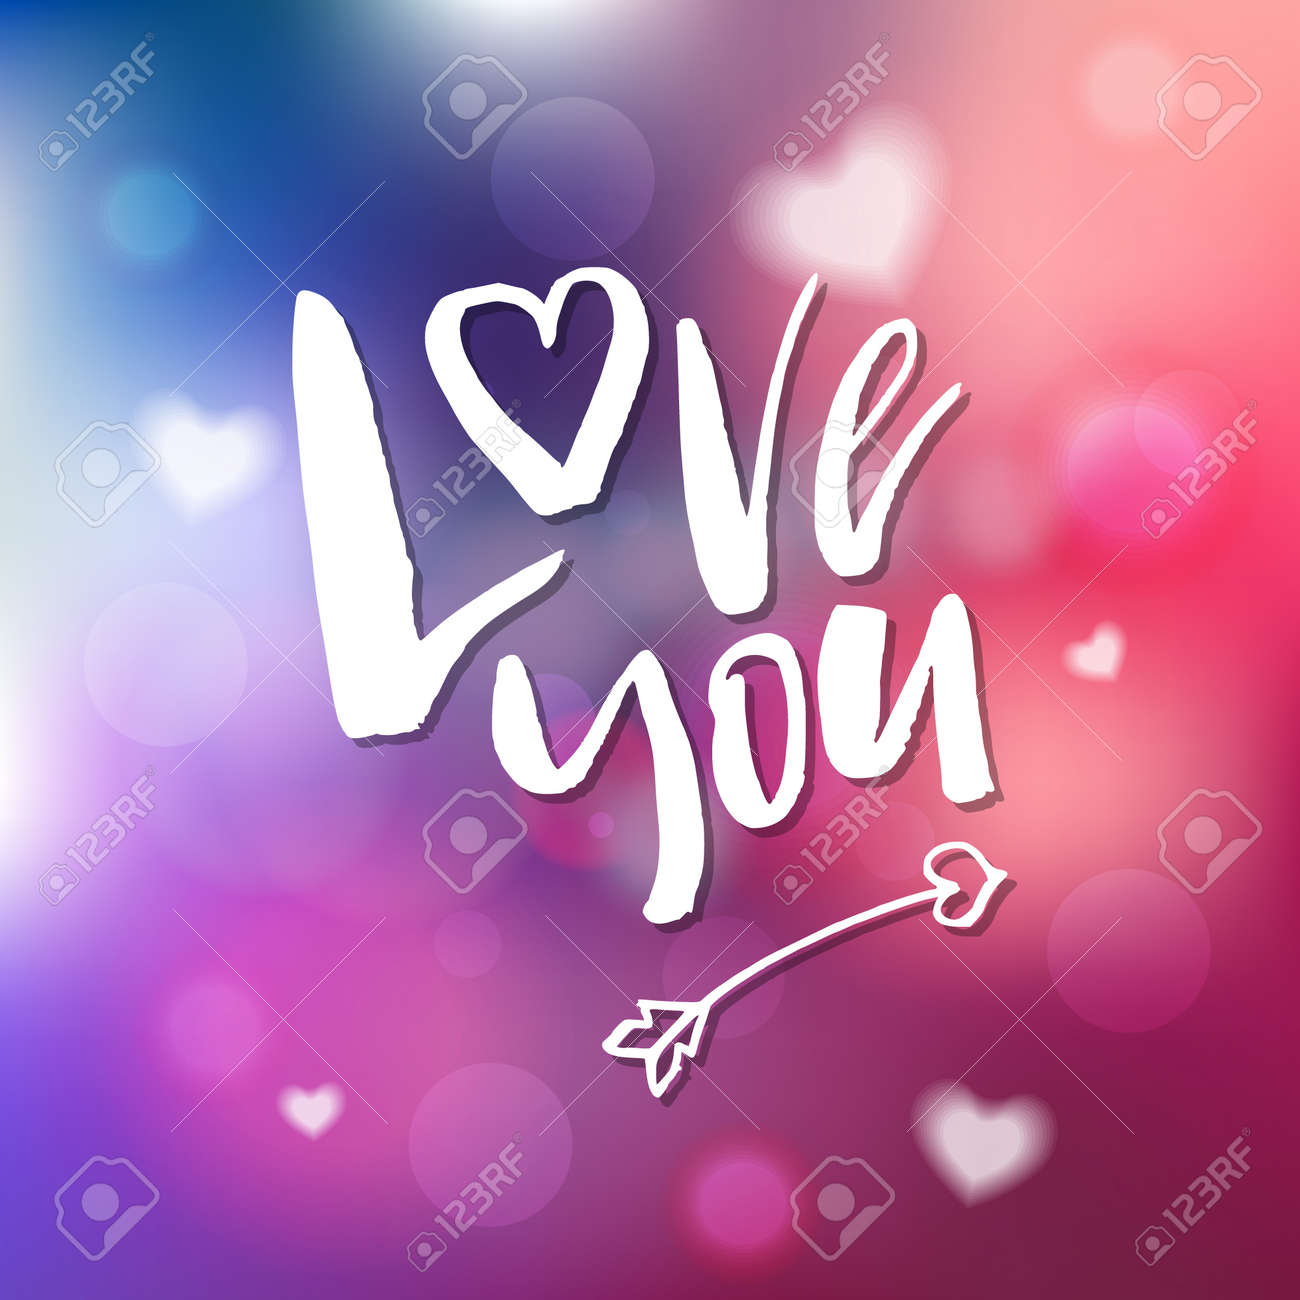 I Love You - Calligraphy for invitation, greeting card, prints, posters. Hand drawn typographic inscription, lettering design. Vector Happy Valentines day holidays quote. - 93304290